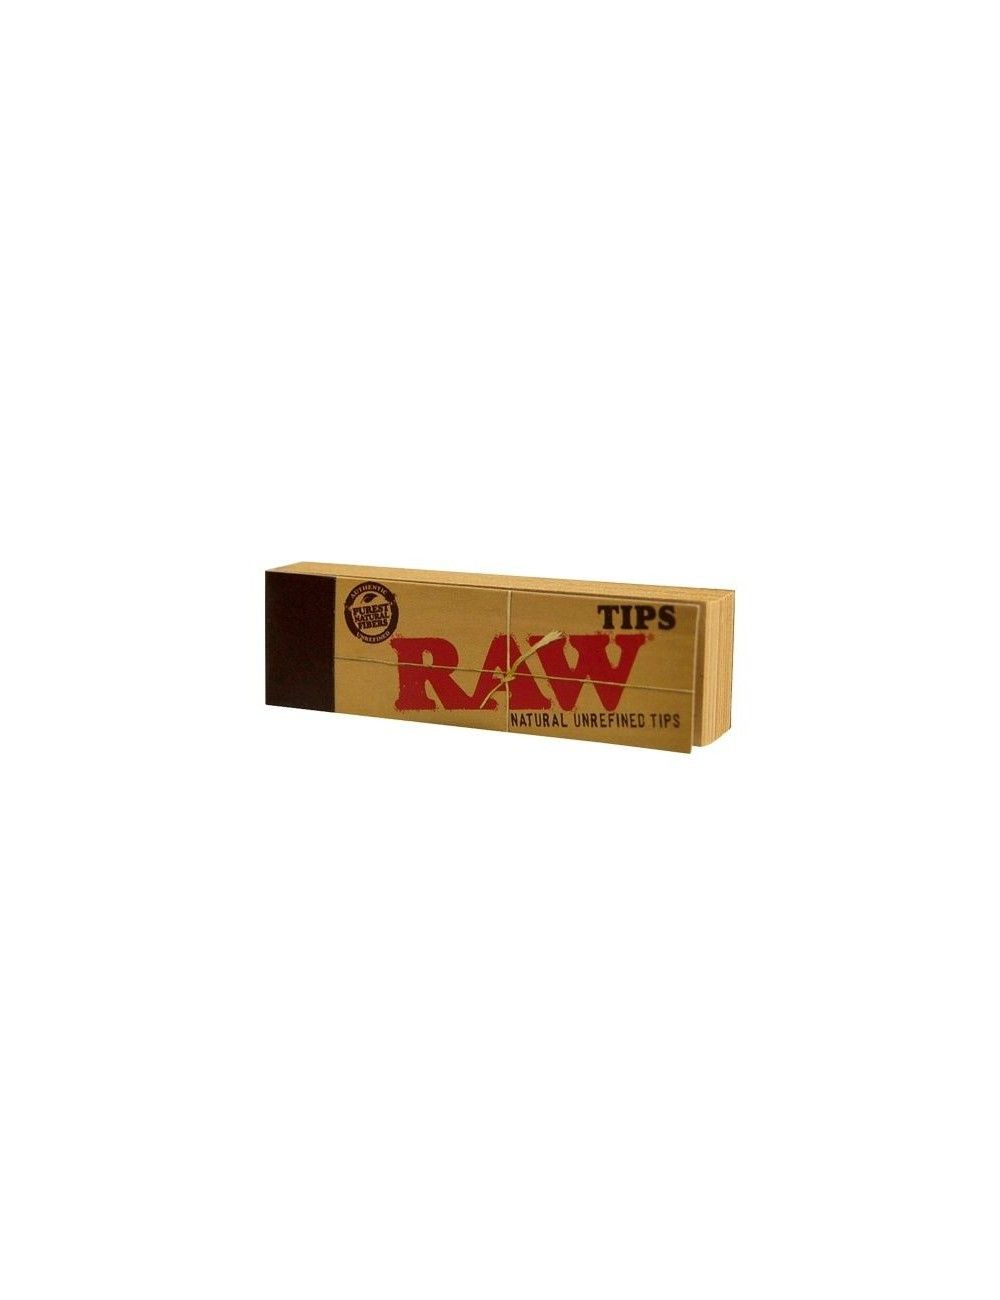 Tips Raw Classic